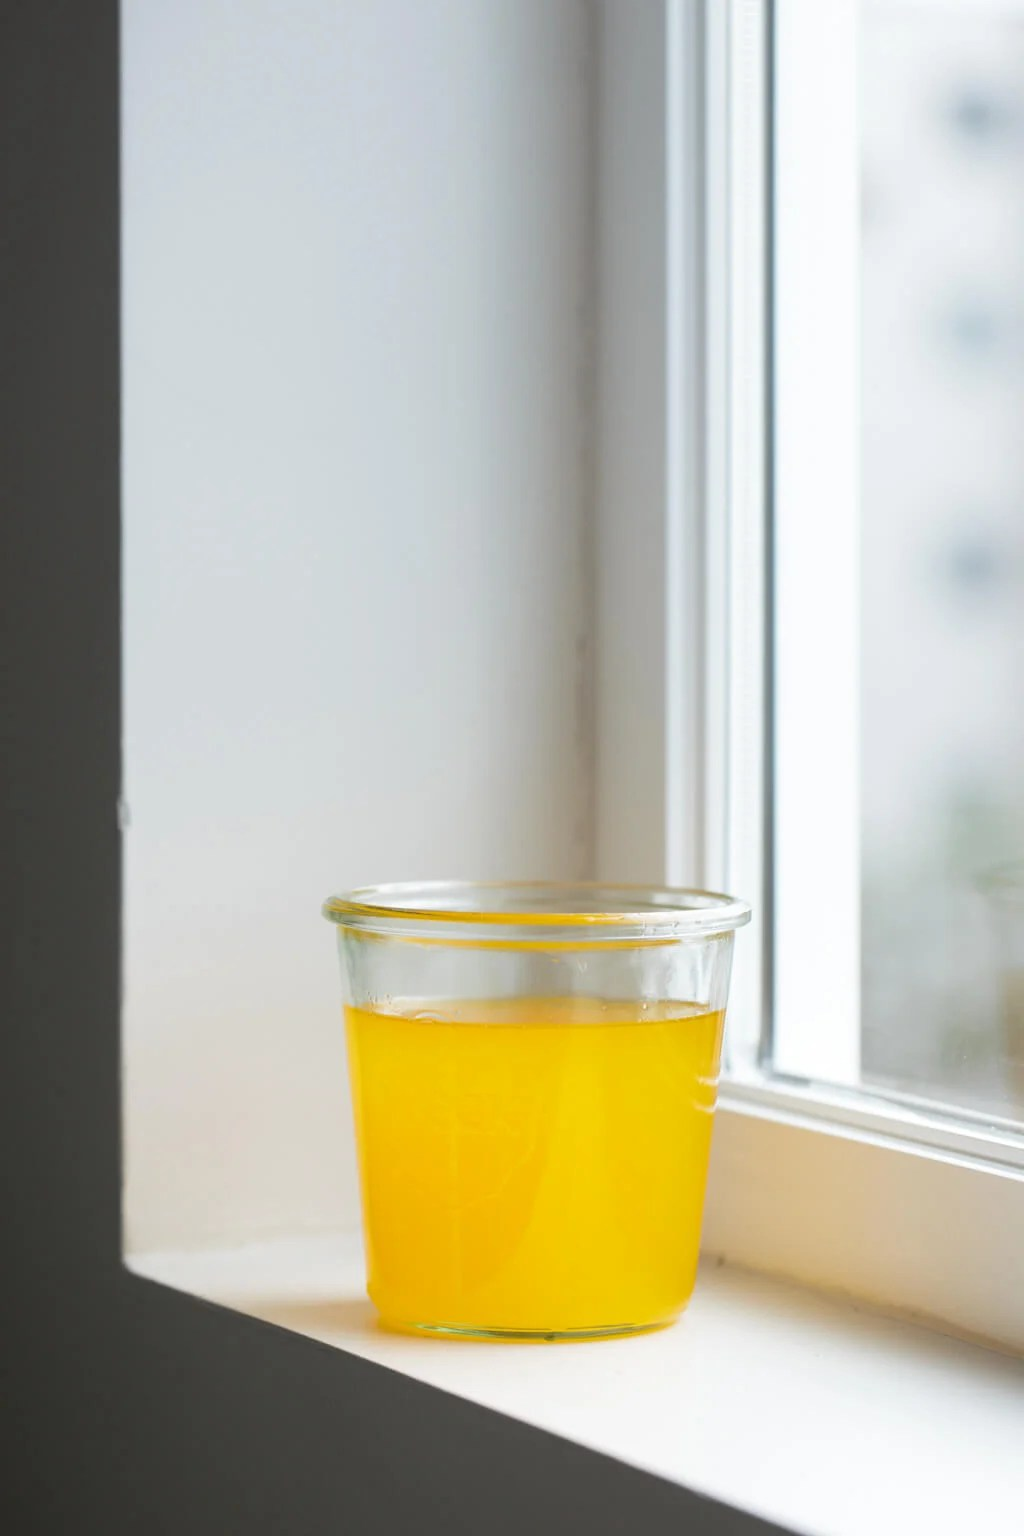 Ghee in a glass jar on a window sill.